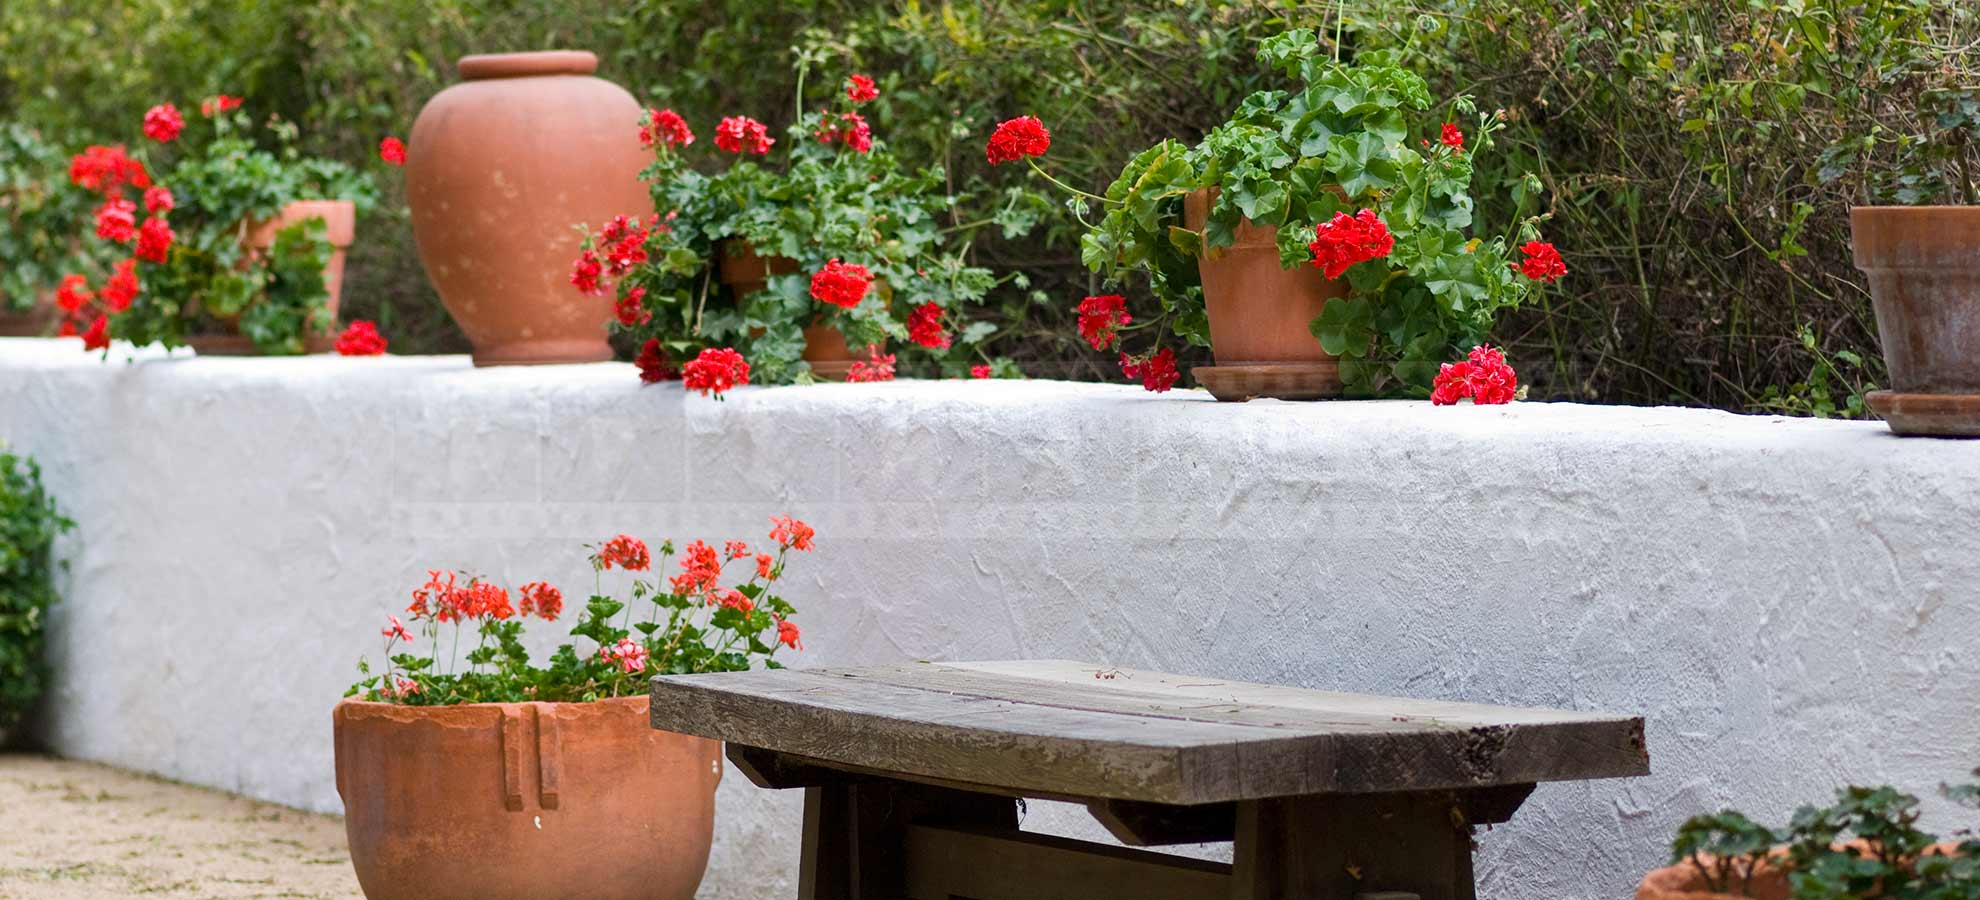 Bench and Clay Pots and Geranium Red Flowers